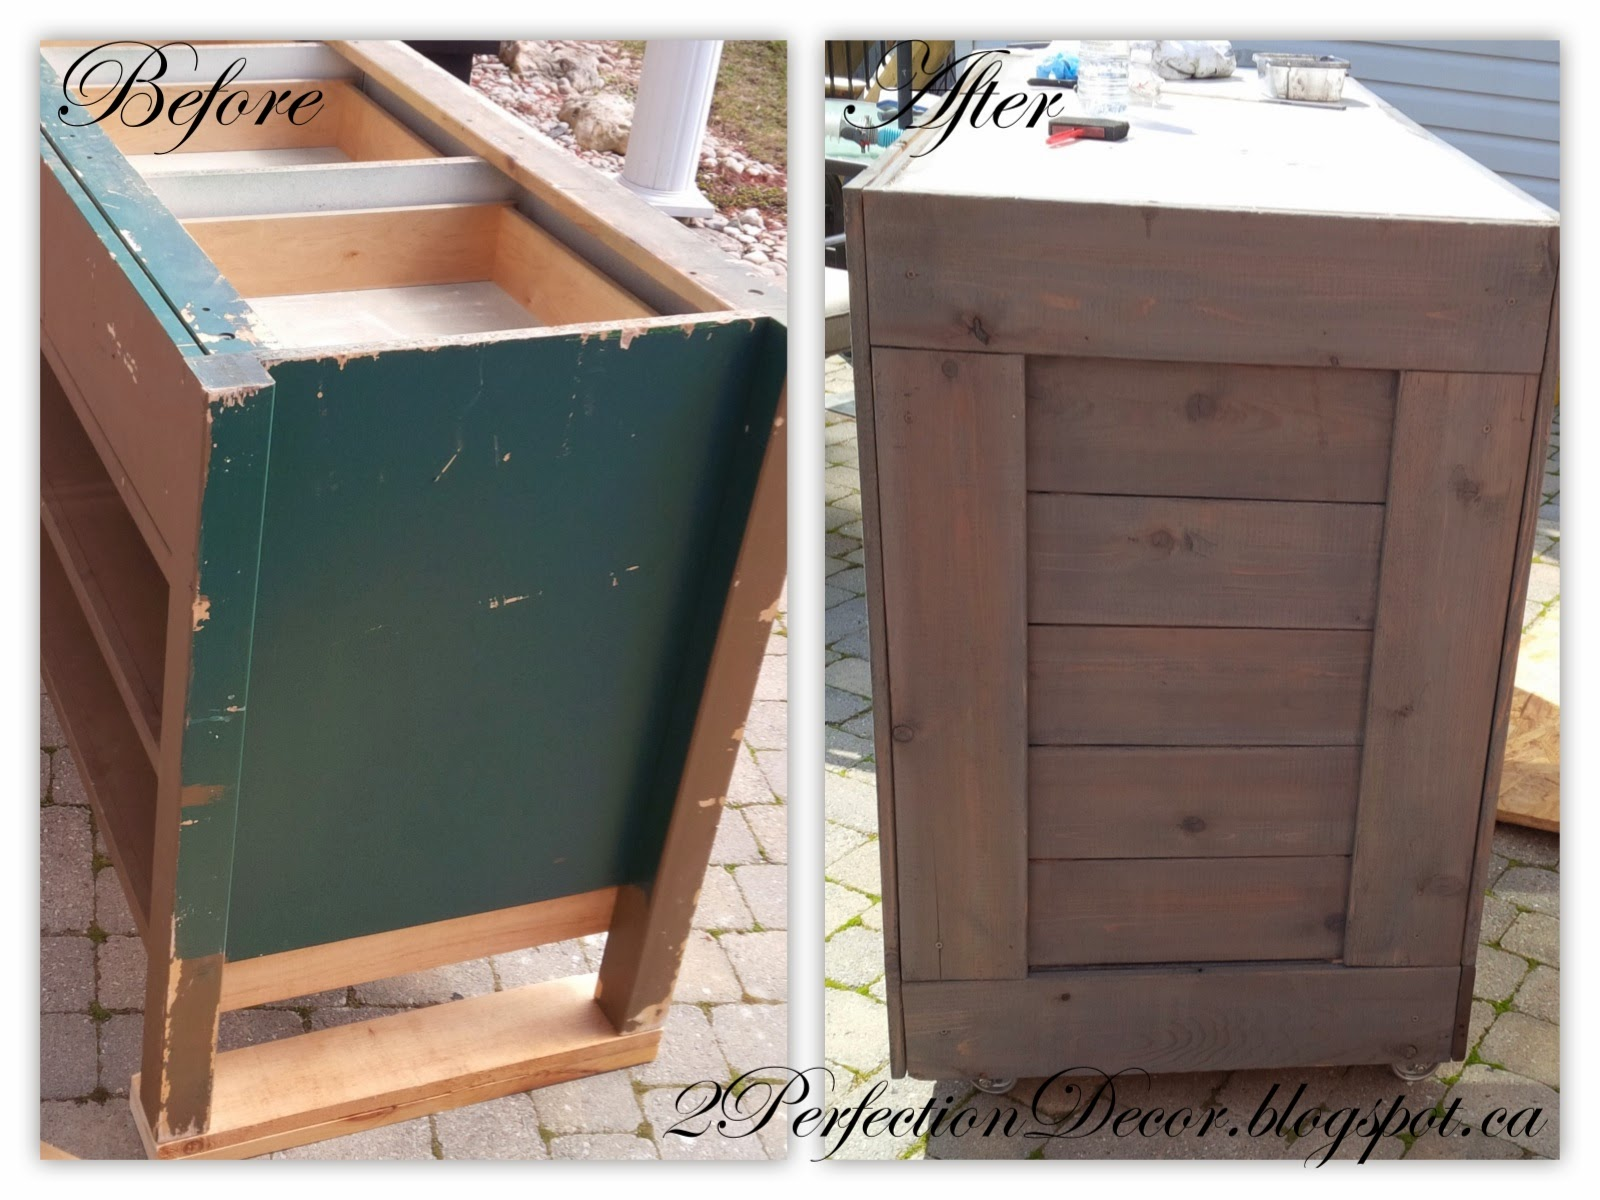 How To Upcycle A Cabinet Into A Wooden Bar By 2Perfection Decor Blog . Full resolution  image, nominally Width 1600 Height 1200 pixels, image with #946337.